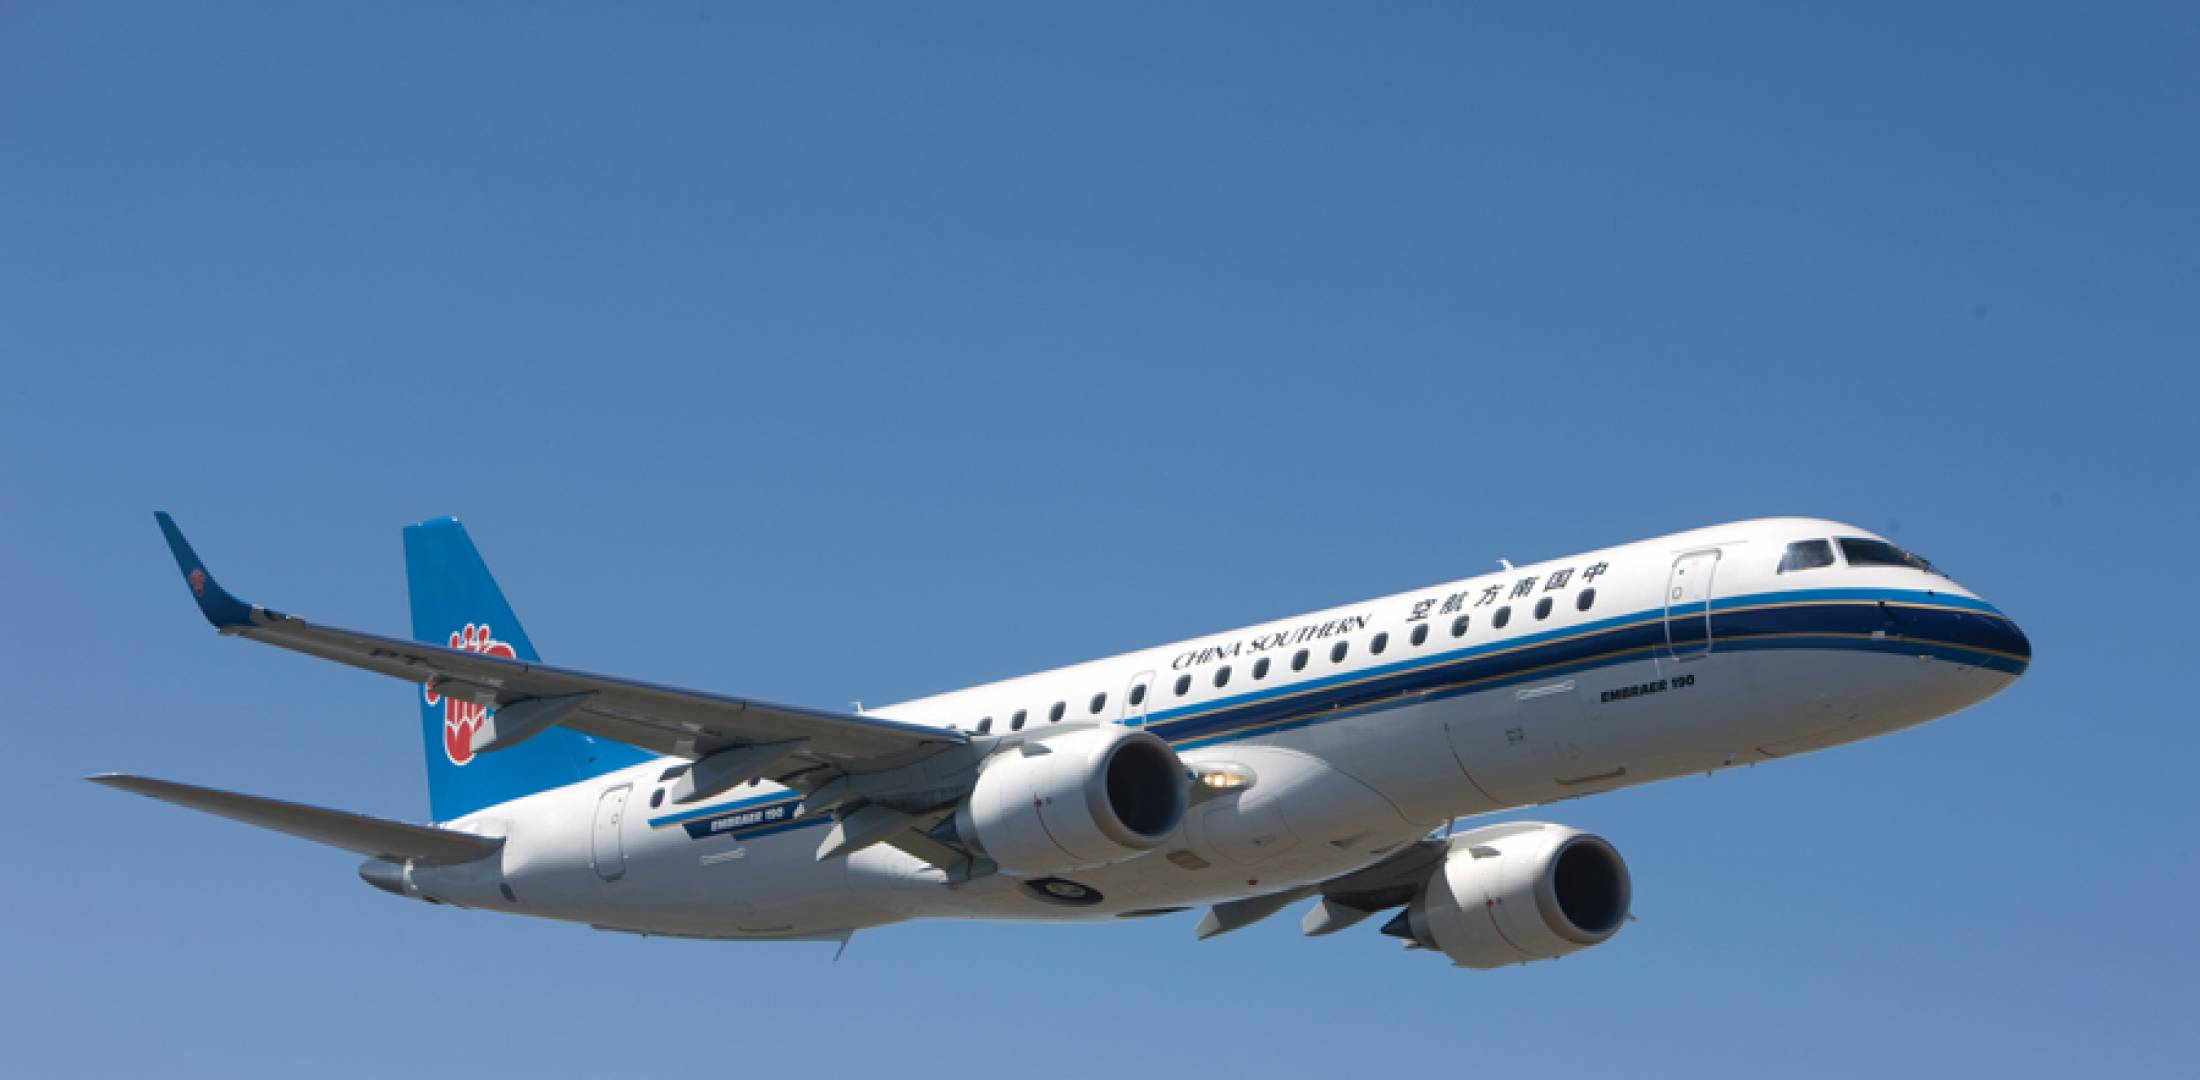 China Southern Airlines now operates 20 Embraer E190s.